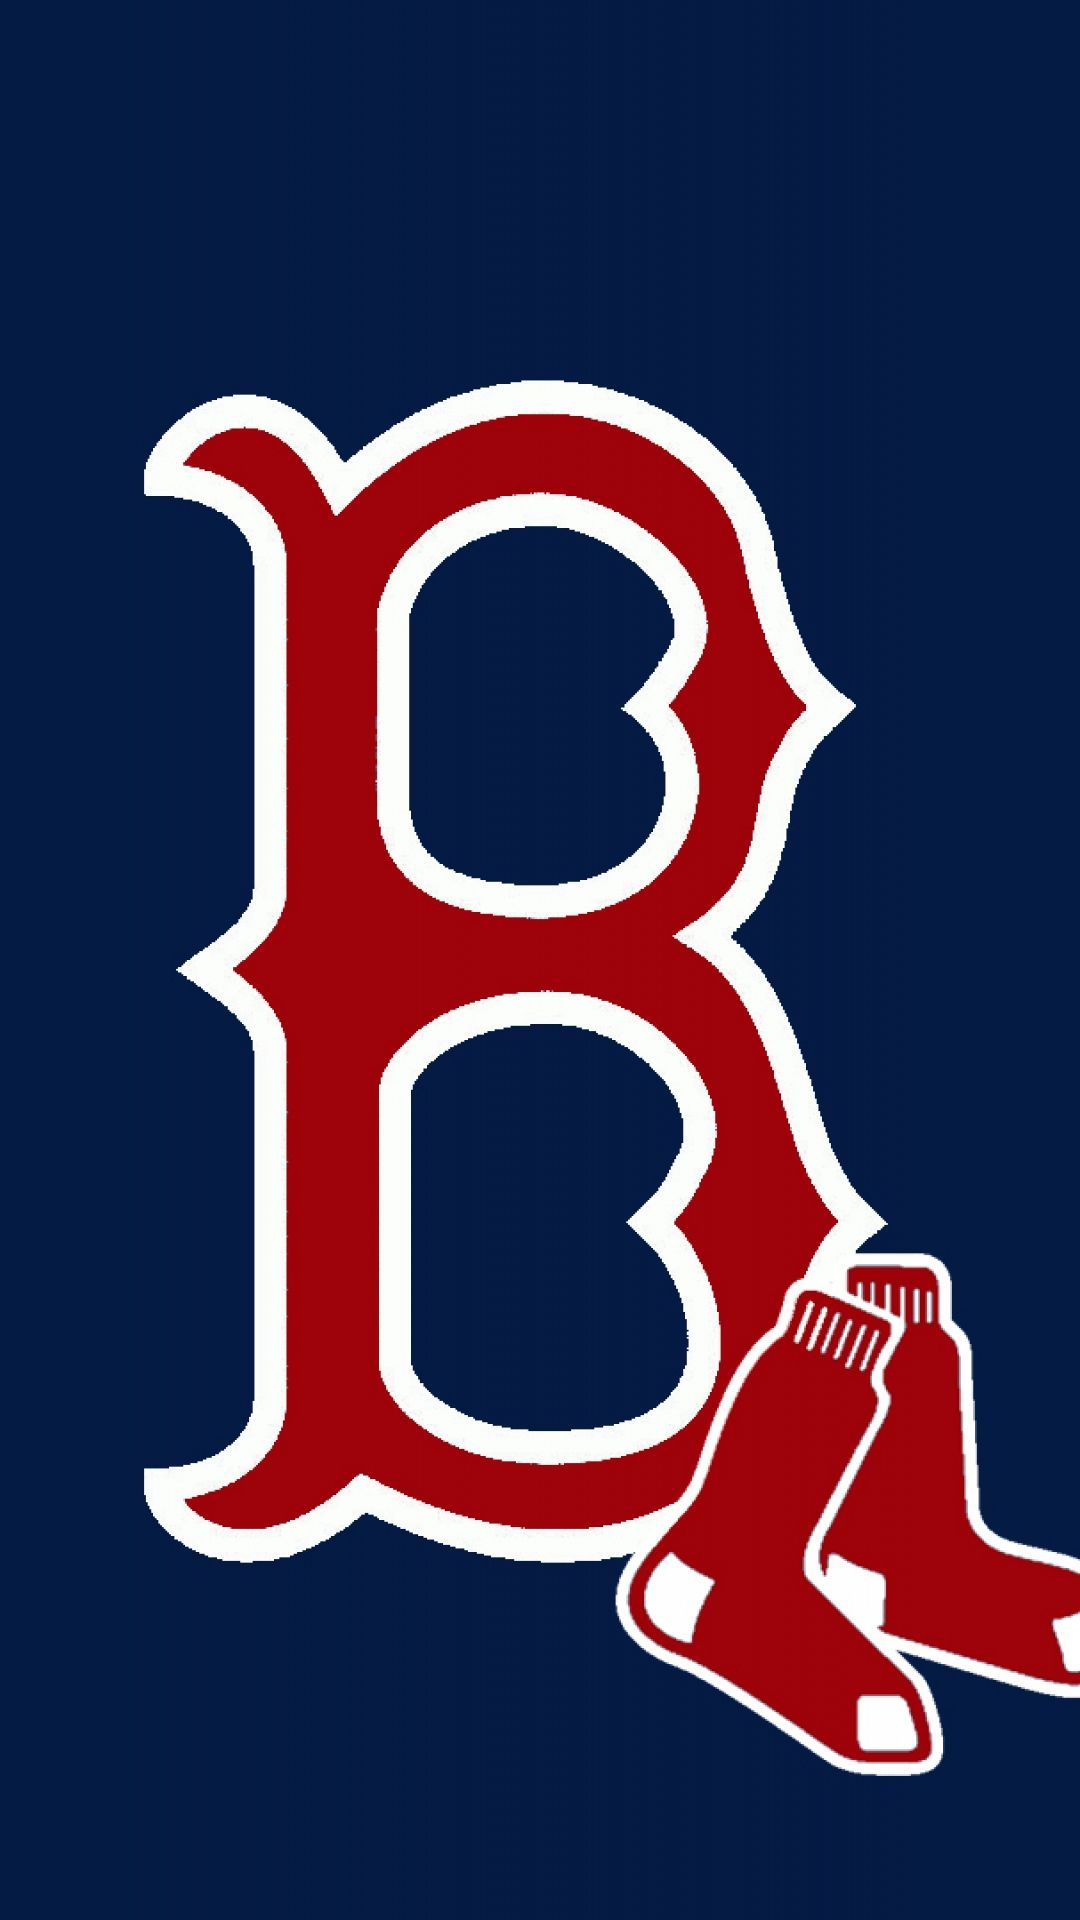 download wallpaper 1080x1920 red sox 2015 phillies boston red rh pinterest com free red sox logo downloads red sox vector logo download